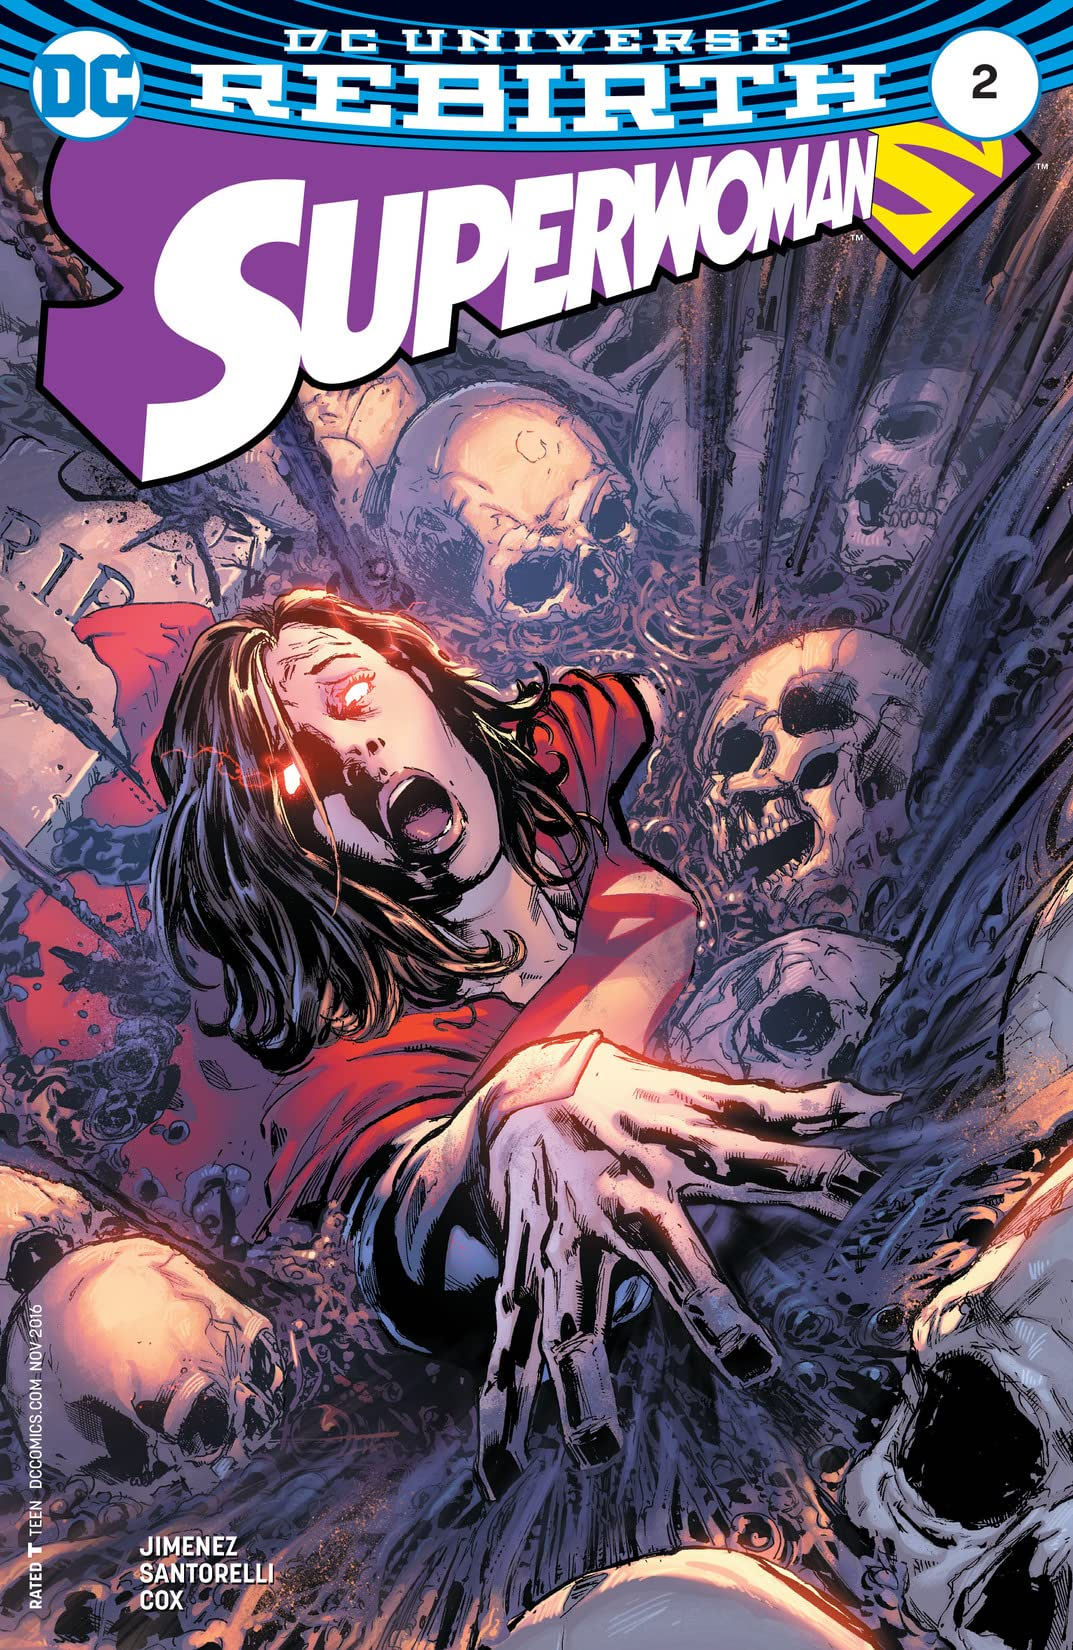 Superwoman (2016-2017) #2